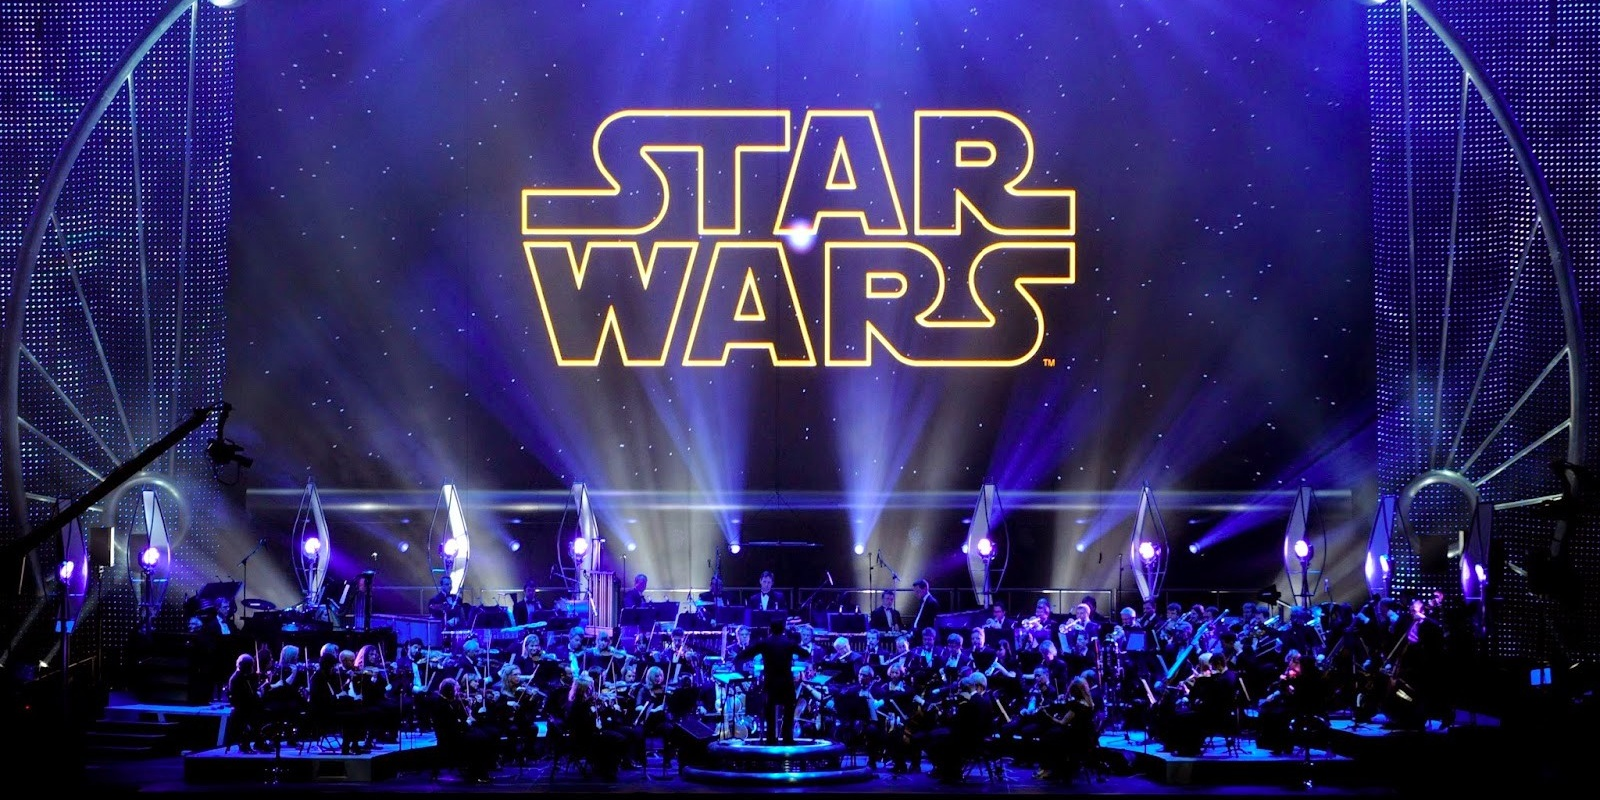 You can watch Star Wars: The Force Awakens in Singapore with a full orchestra